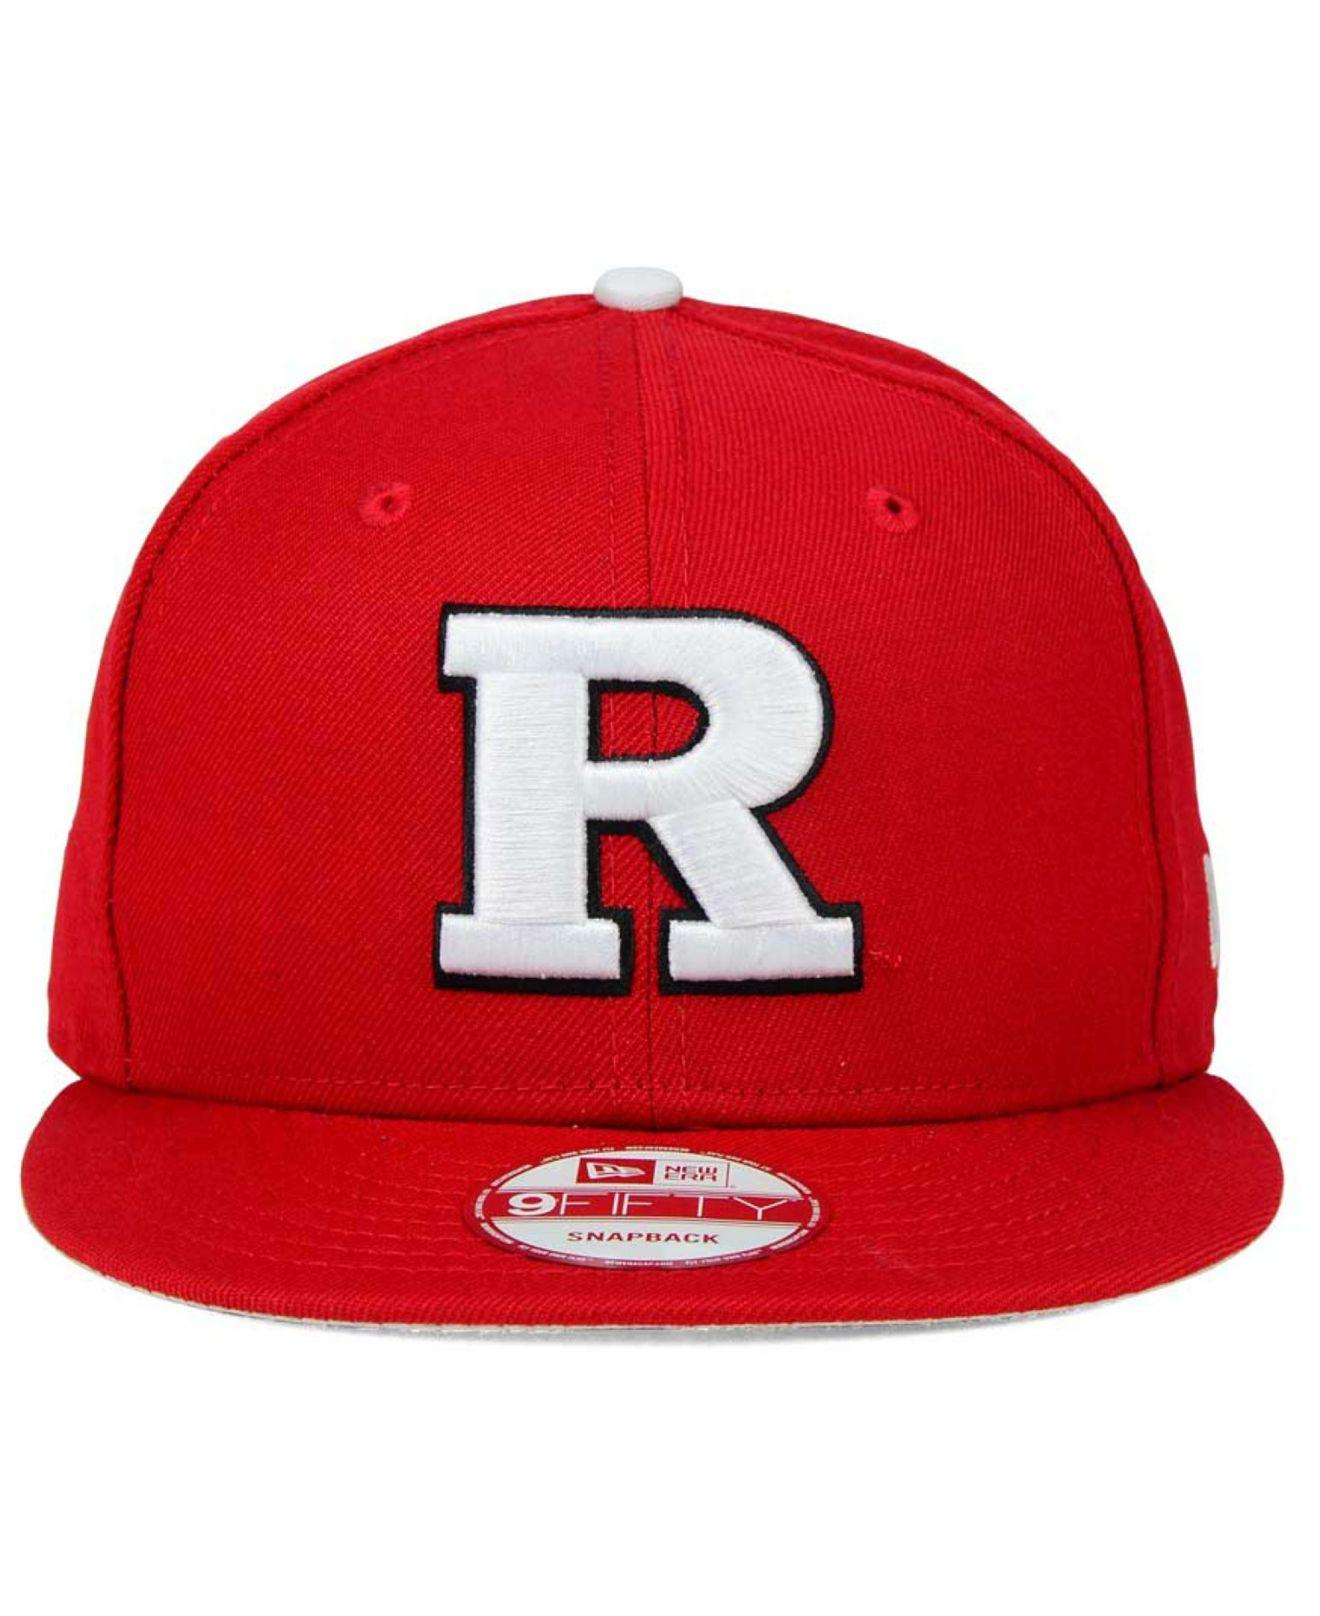 179980f0 ... order lyst ktz rutgers scarlet knights core 9fifty snapback cap in red  for men da8ab 312f0